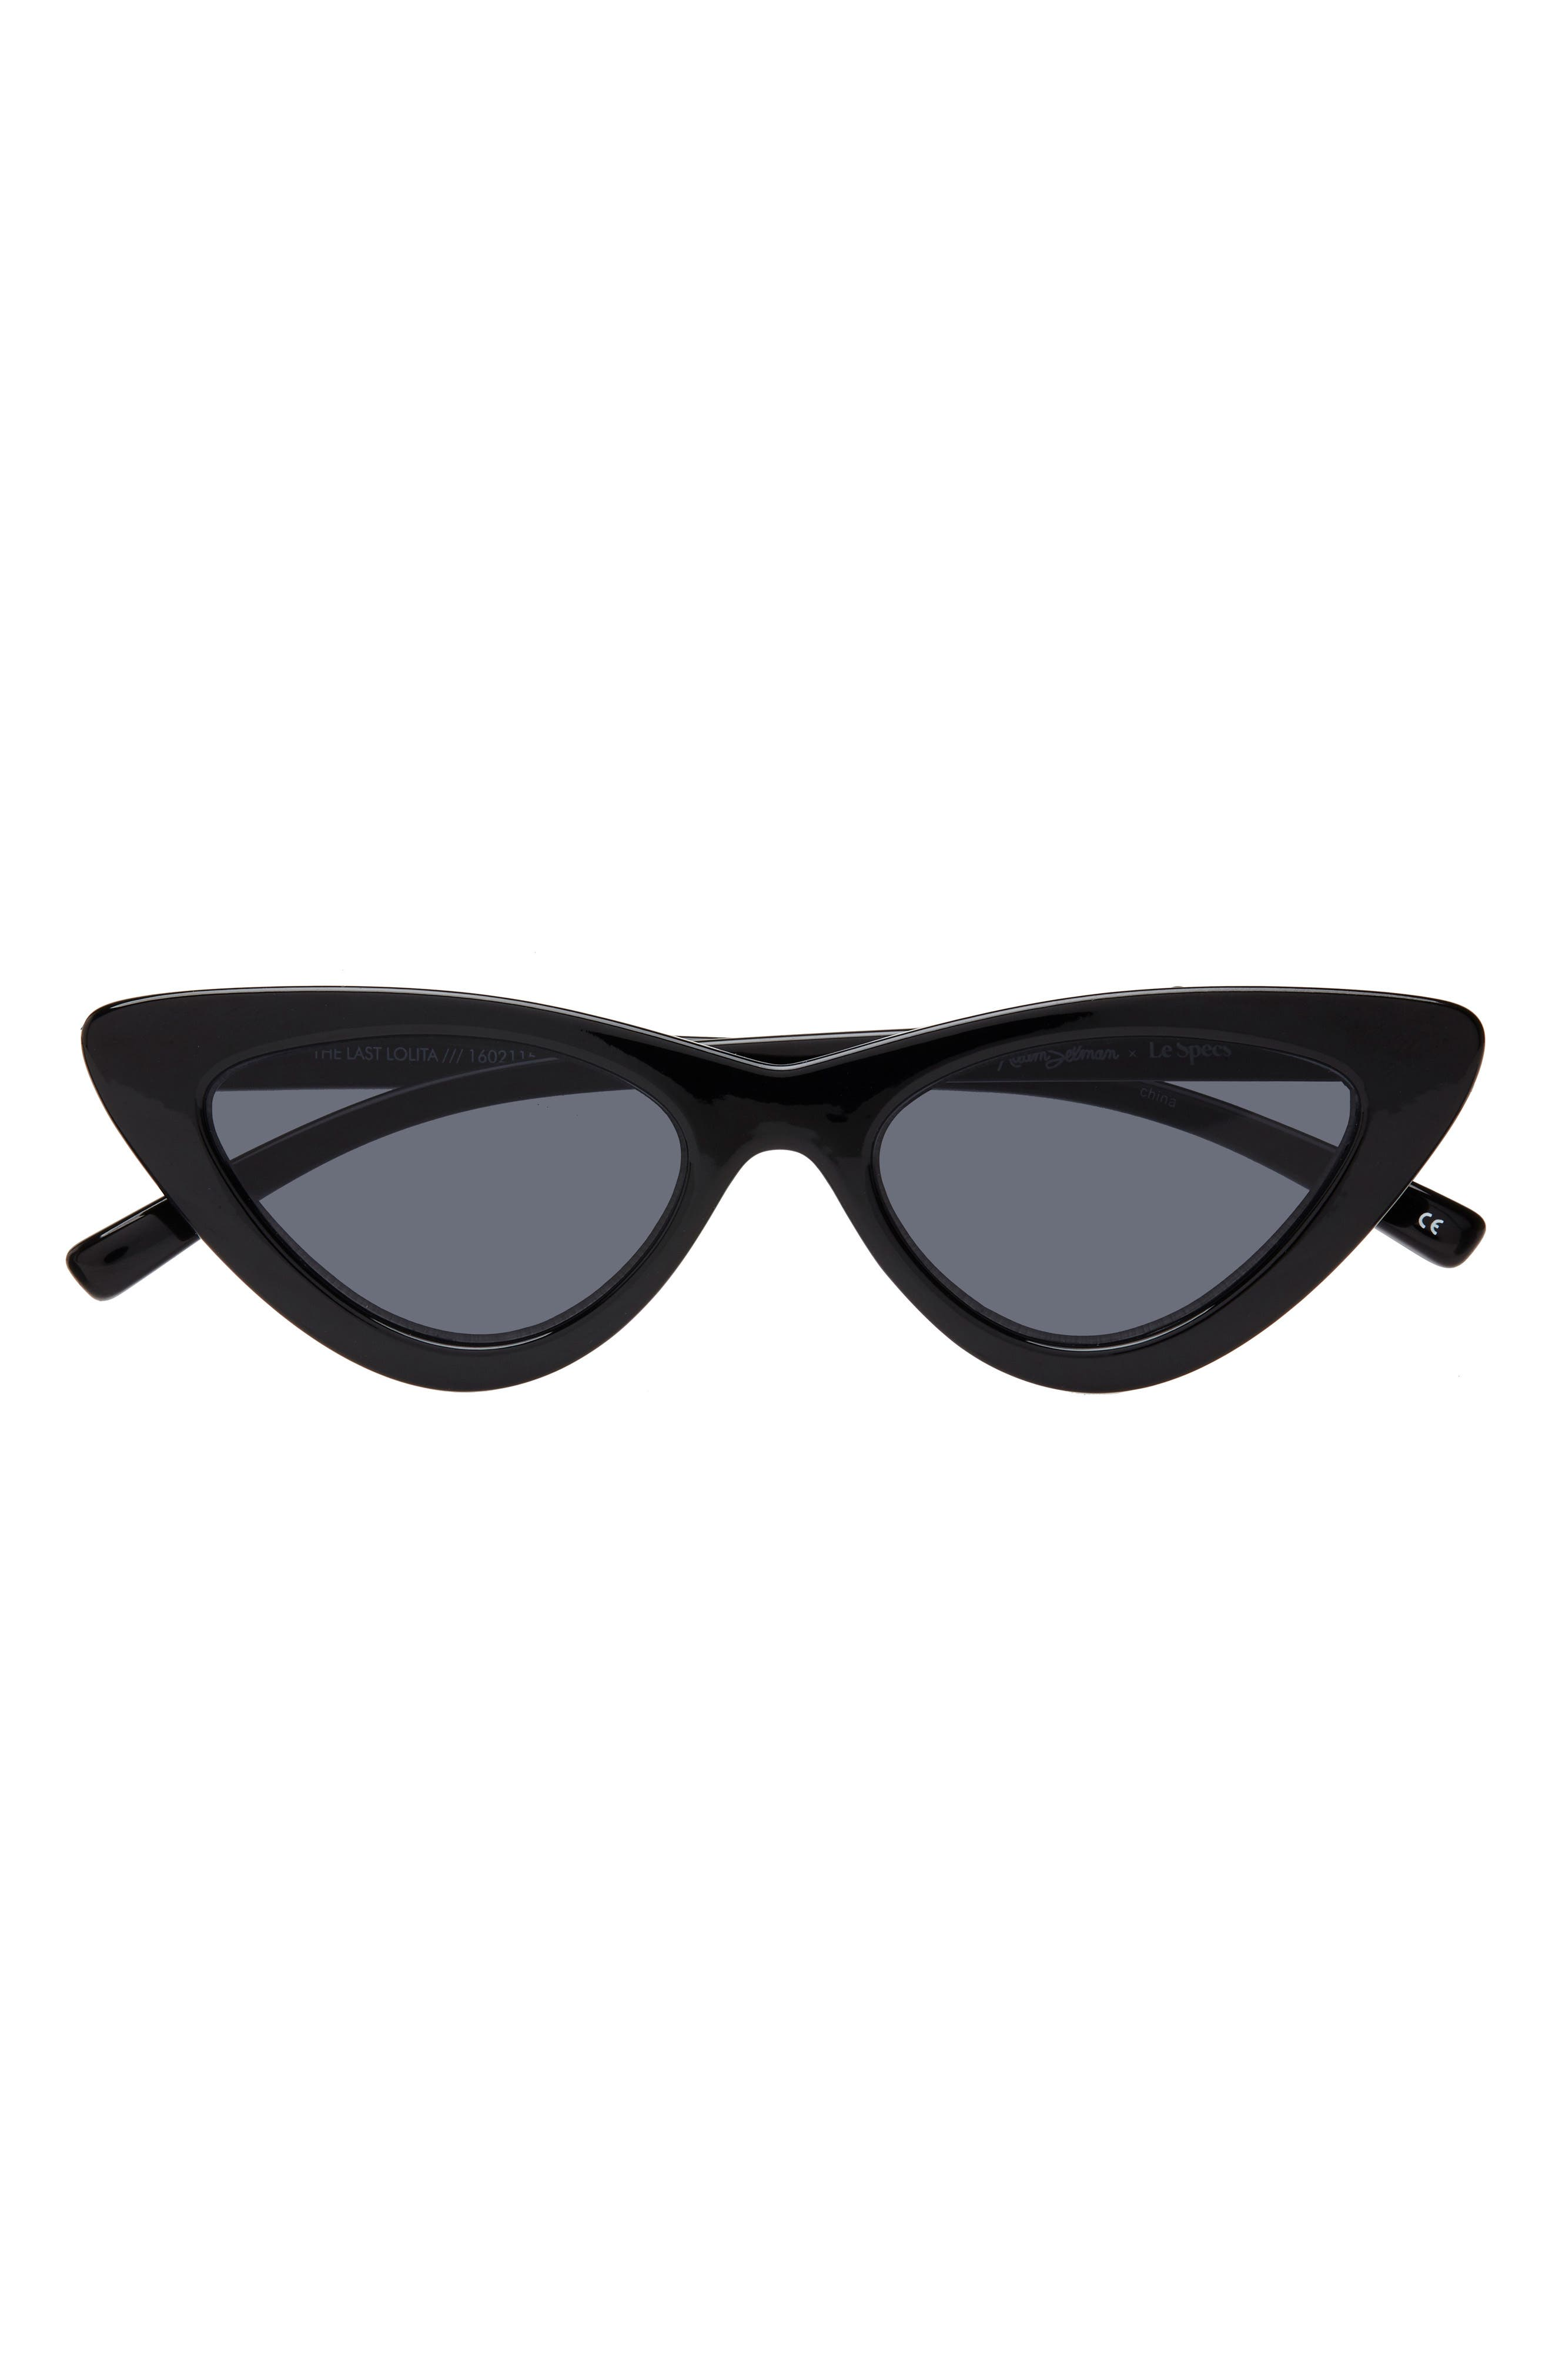 Lolita 49mm Cat Eye Sunglasses,                         Main,                         color, BLACK